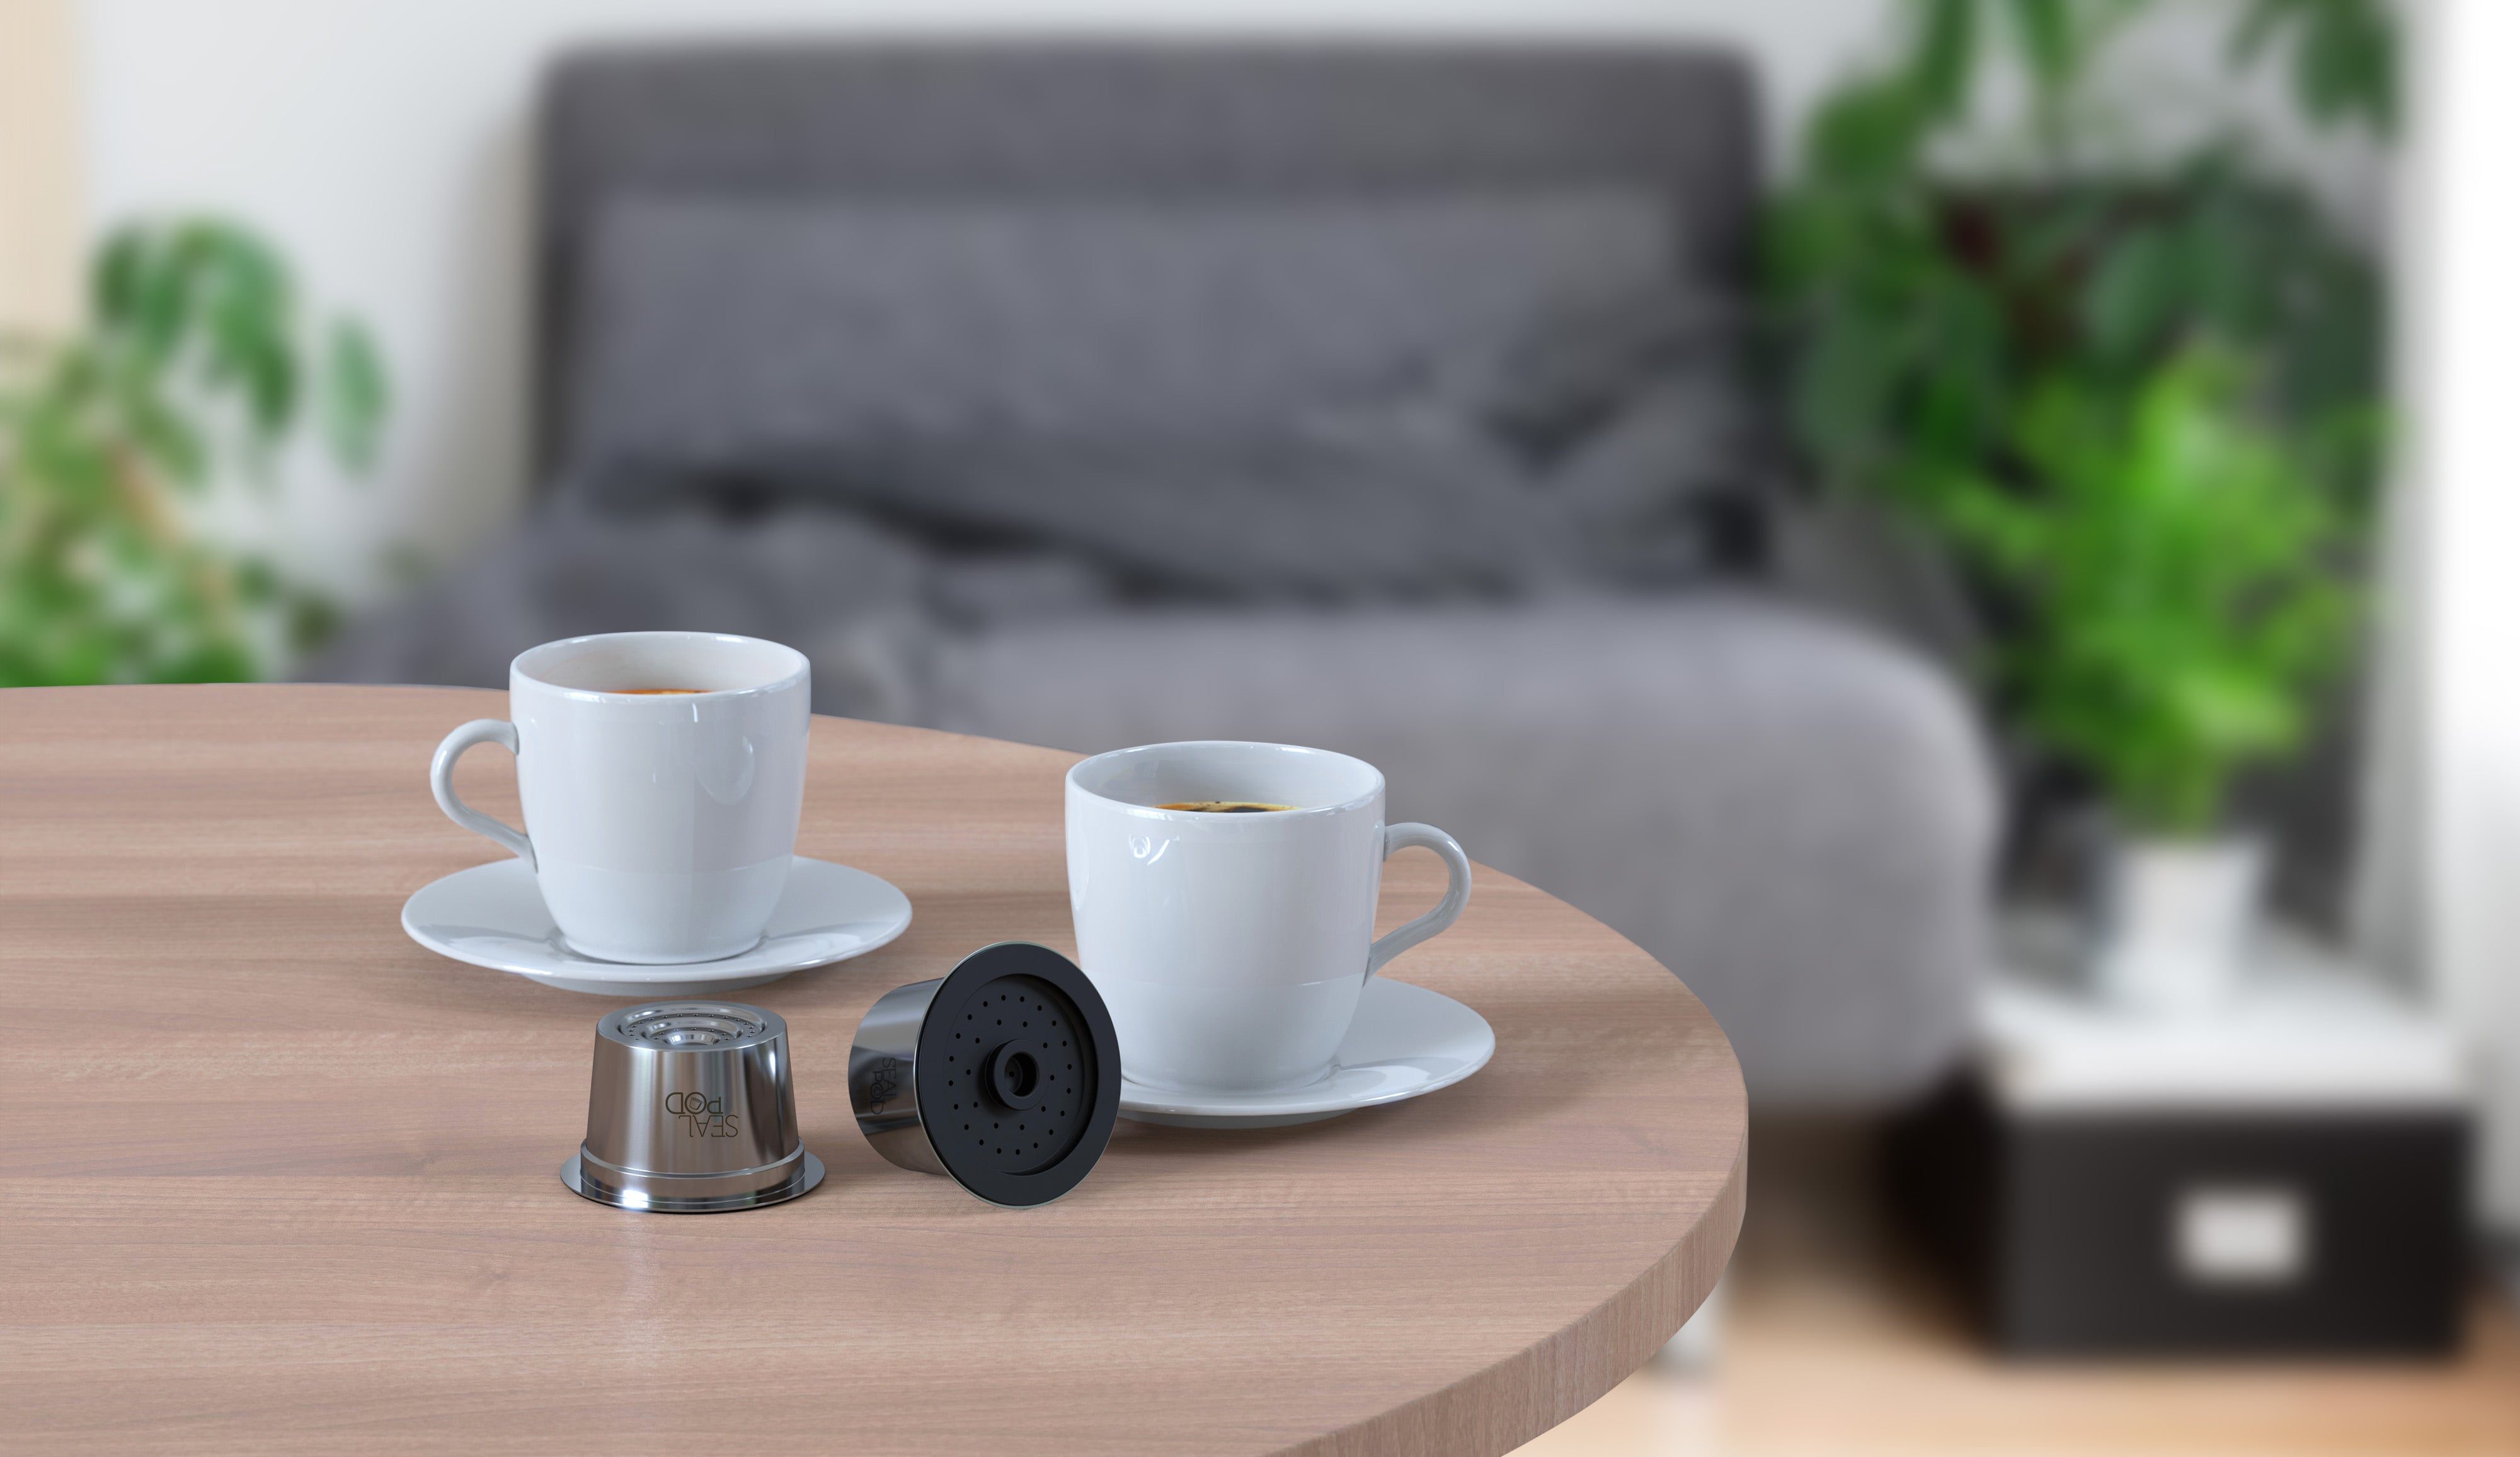 Stainless steel reusable coffee capsule for Caffitaly/K-Fee/Cafissimo